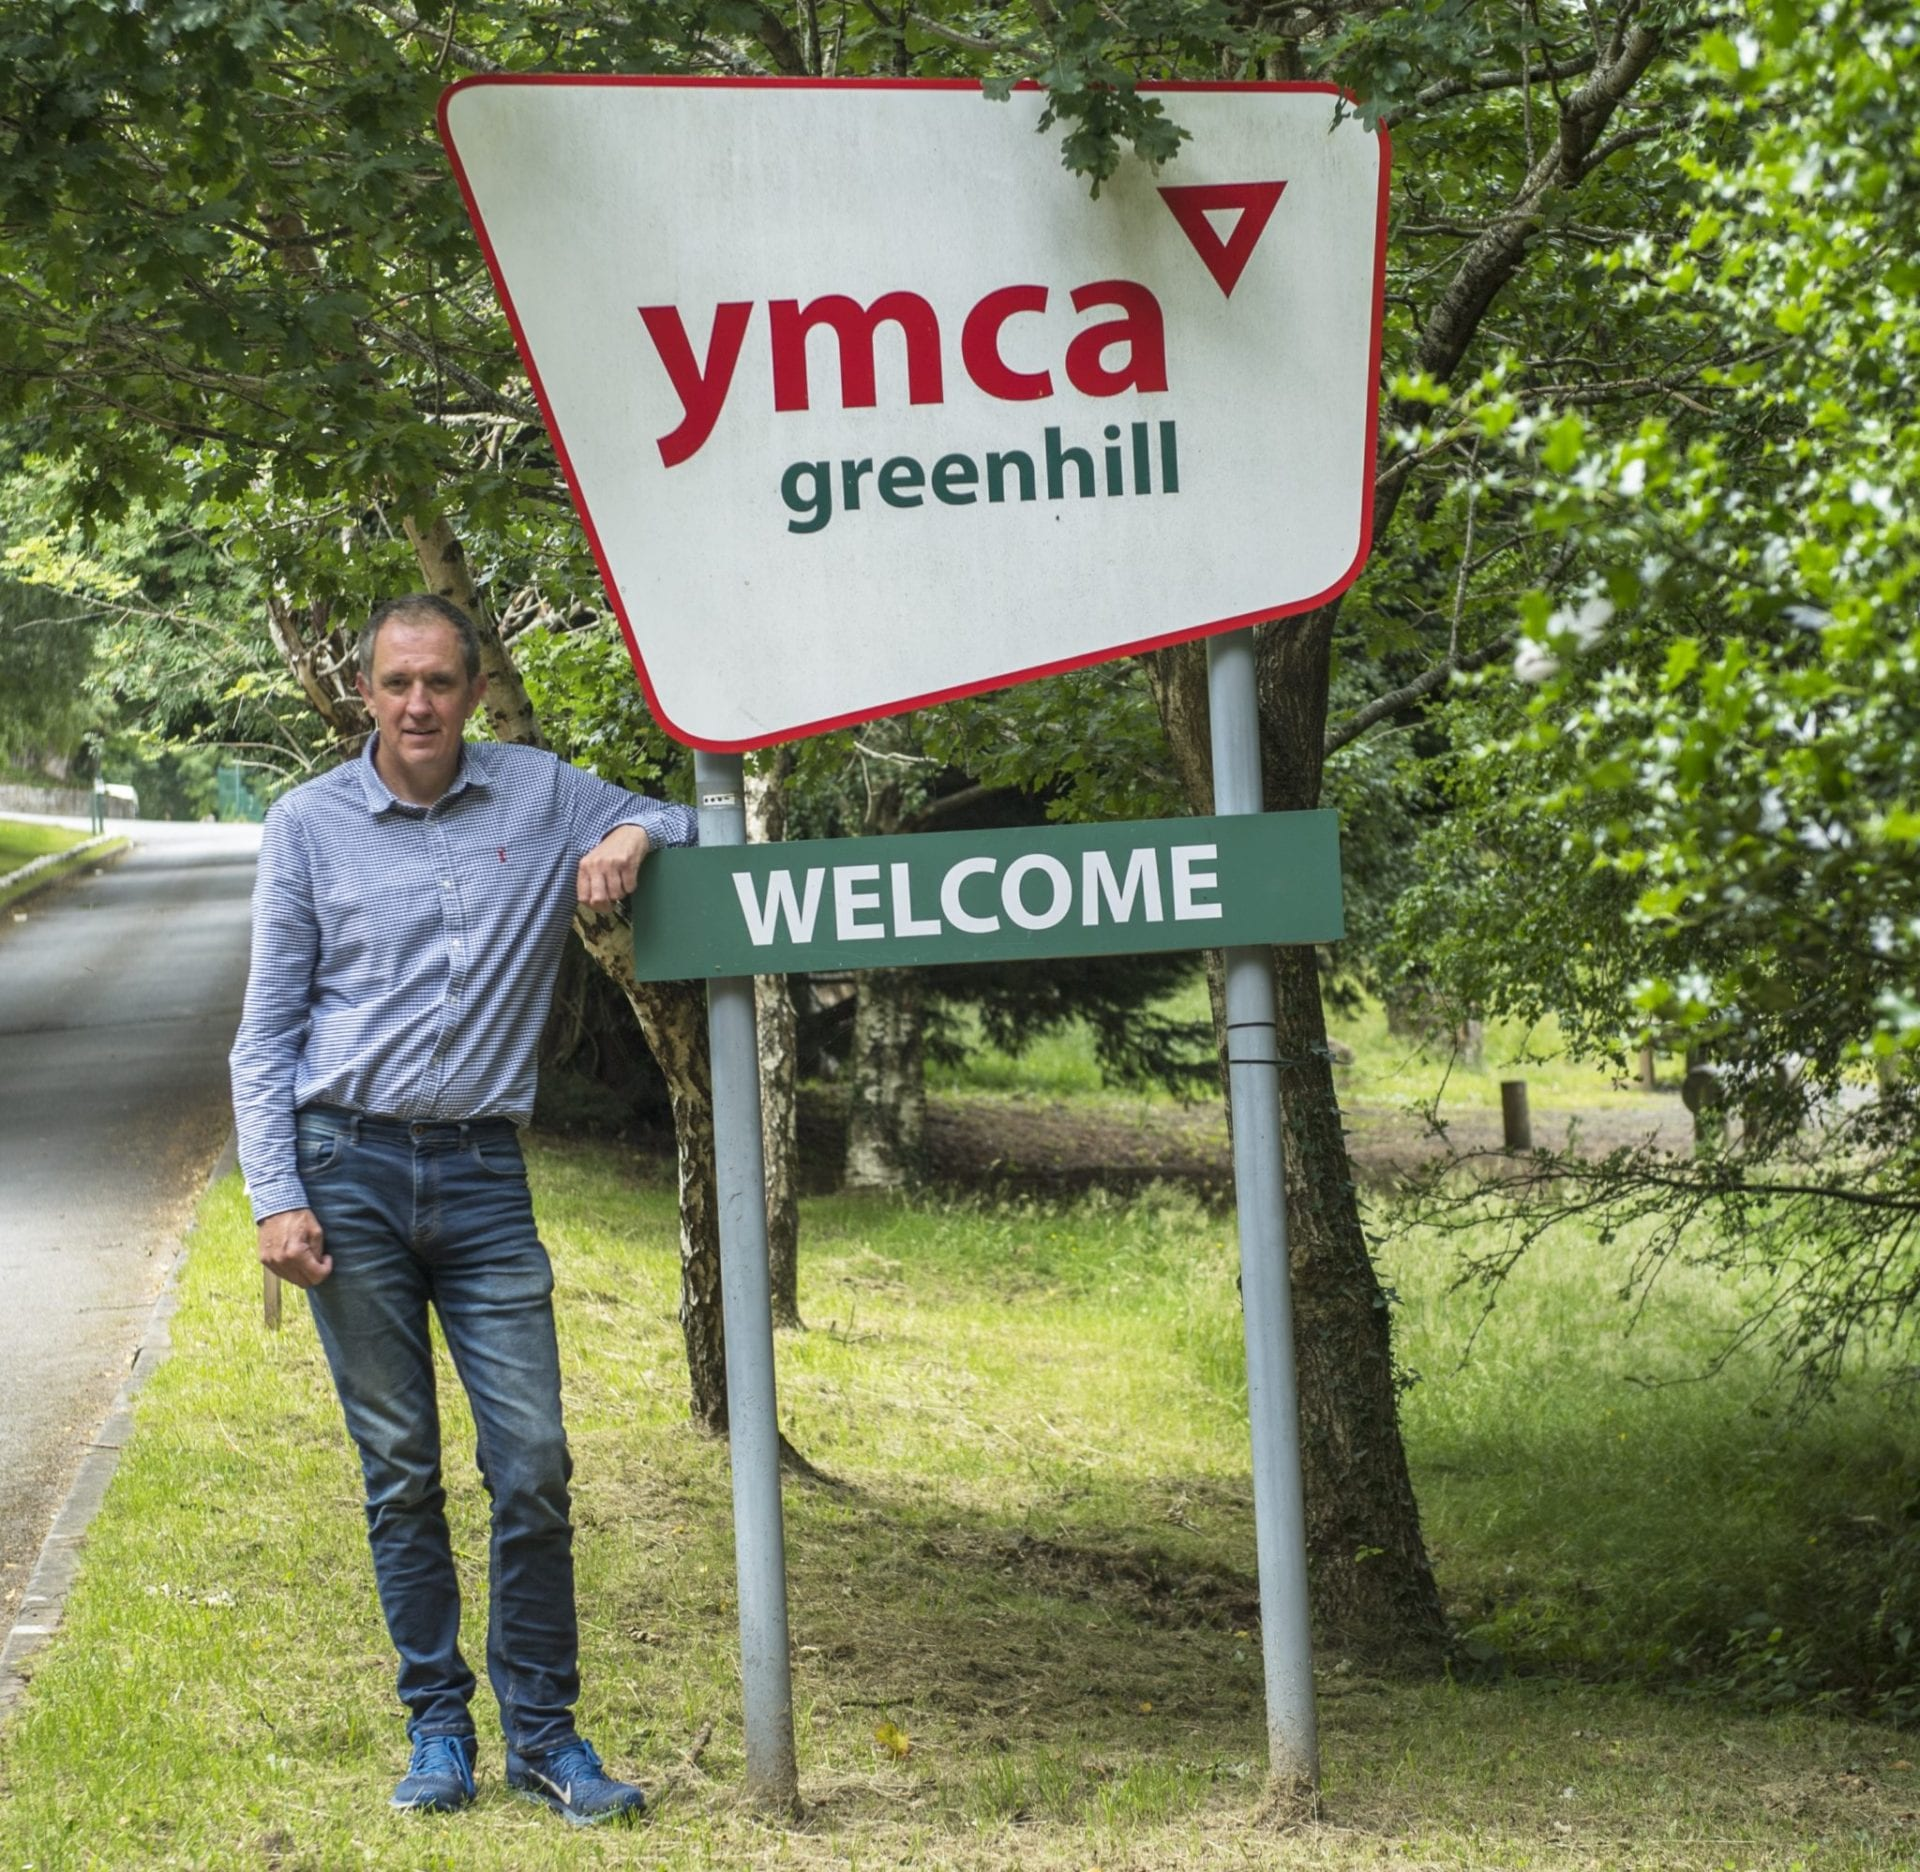 For the first time ever the YMCA's extensive Greenhill residential facilities in Newcastle, County Down will be available to the general public to book.